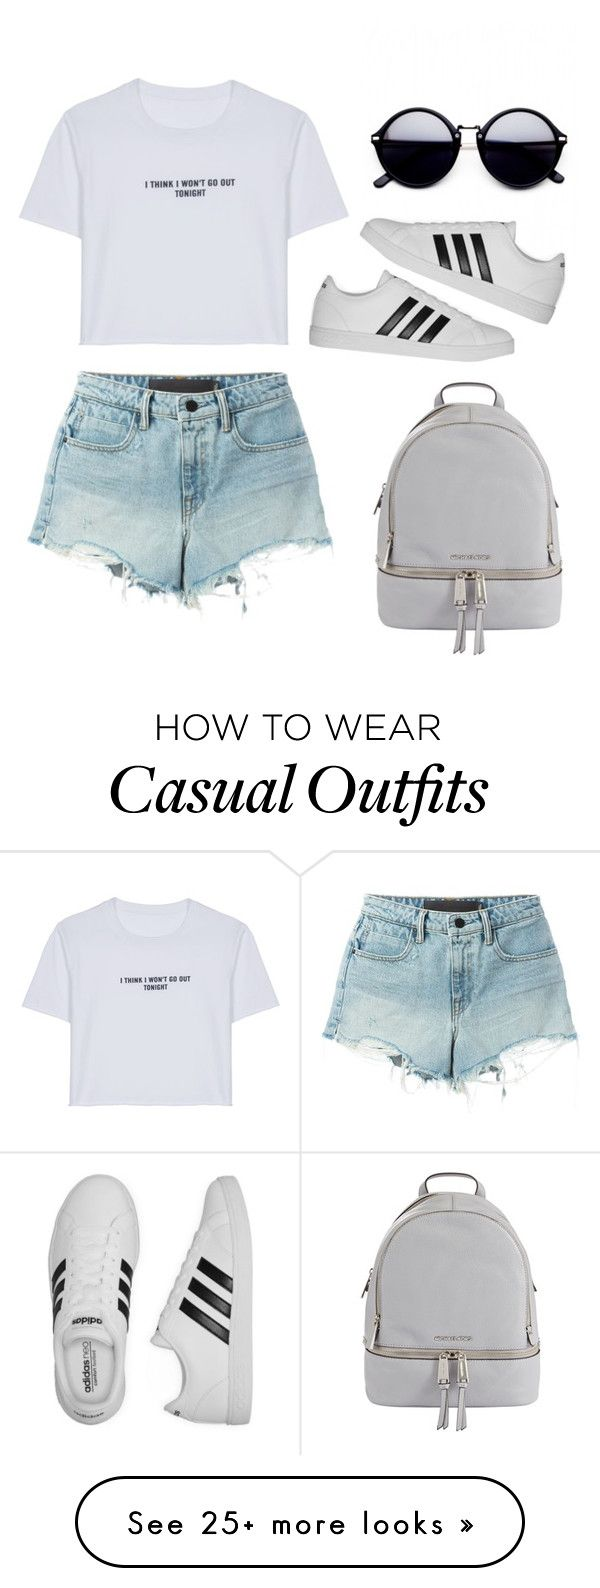 """Casual"" by guille-ballesteros on Polyvore featuring MICHAEL Michael Kors, WithChic, T By Alexander Wang, adidas and vintage"